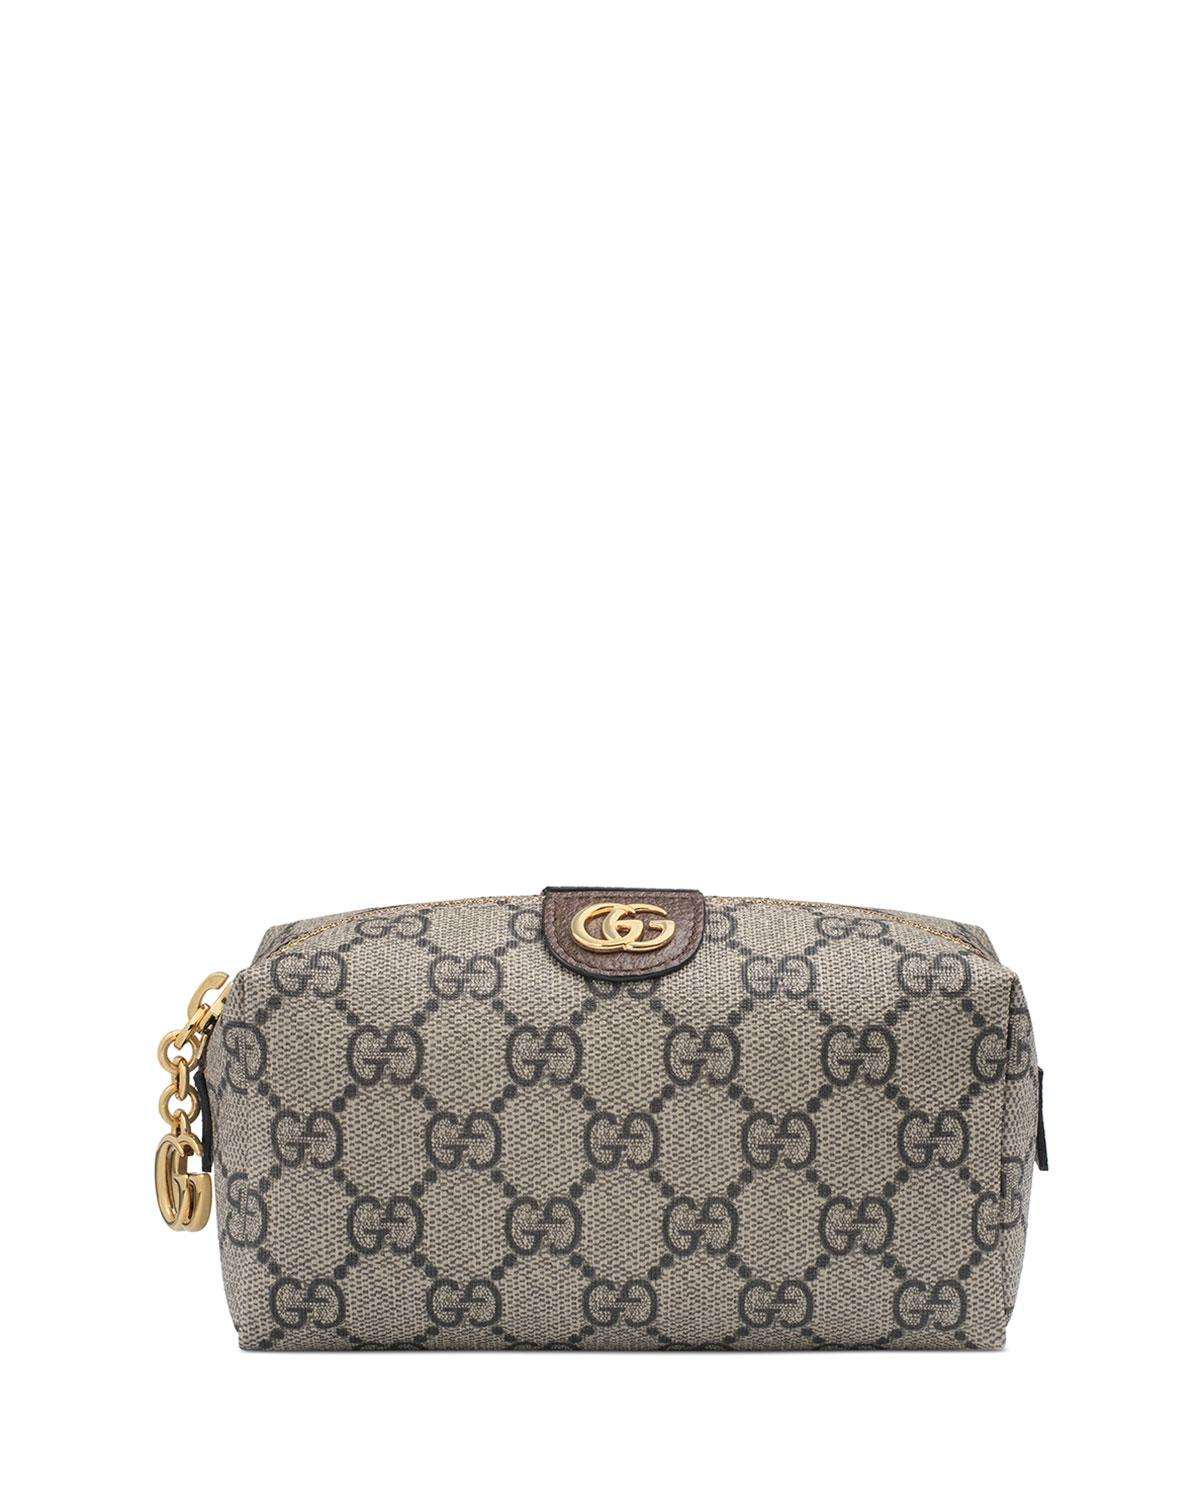 d2935ac27e86e ... 9e007f6c1b7 Lyst - Gucci Ophidia Mini GG Supreme Cosmetics Clutch Bag  in Natural ...